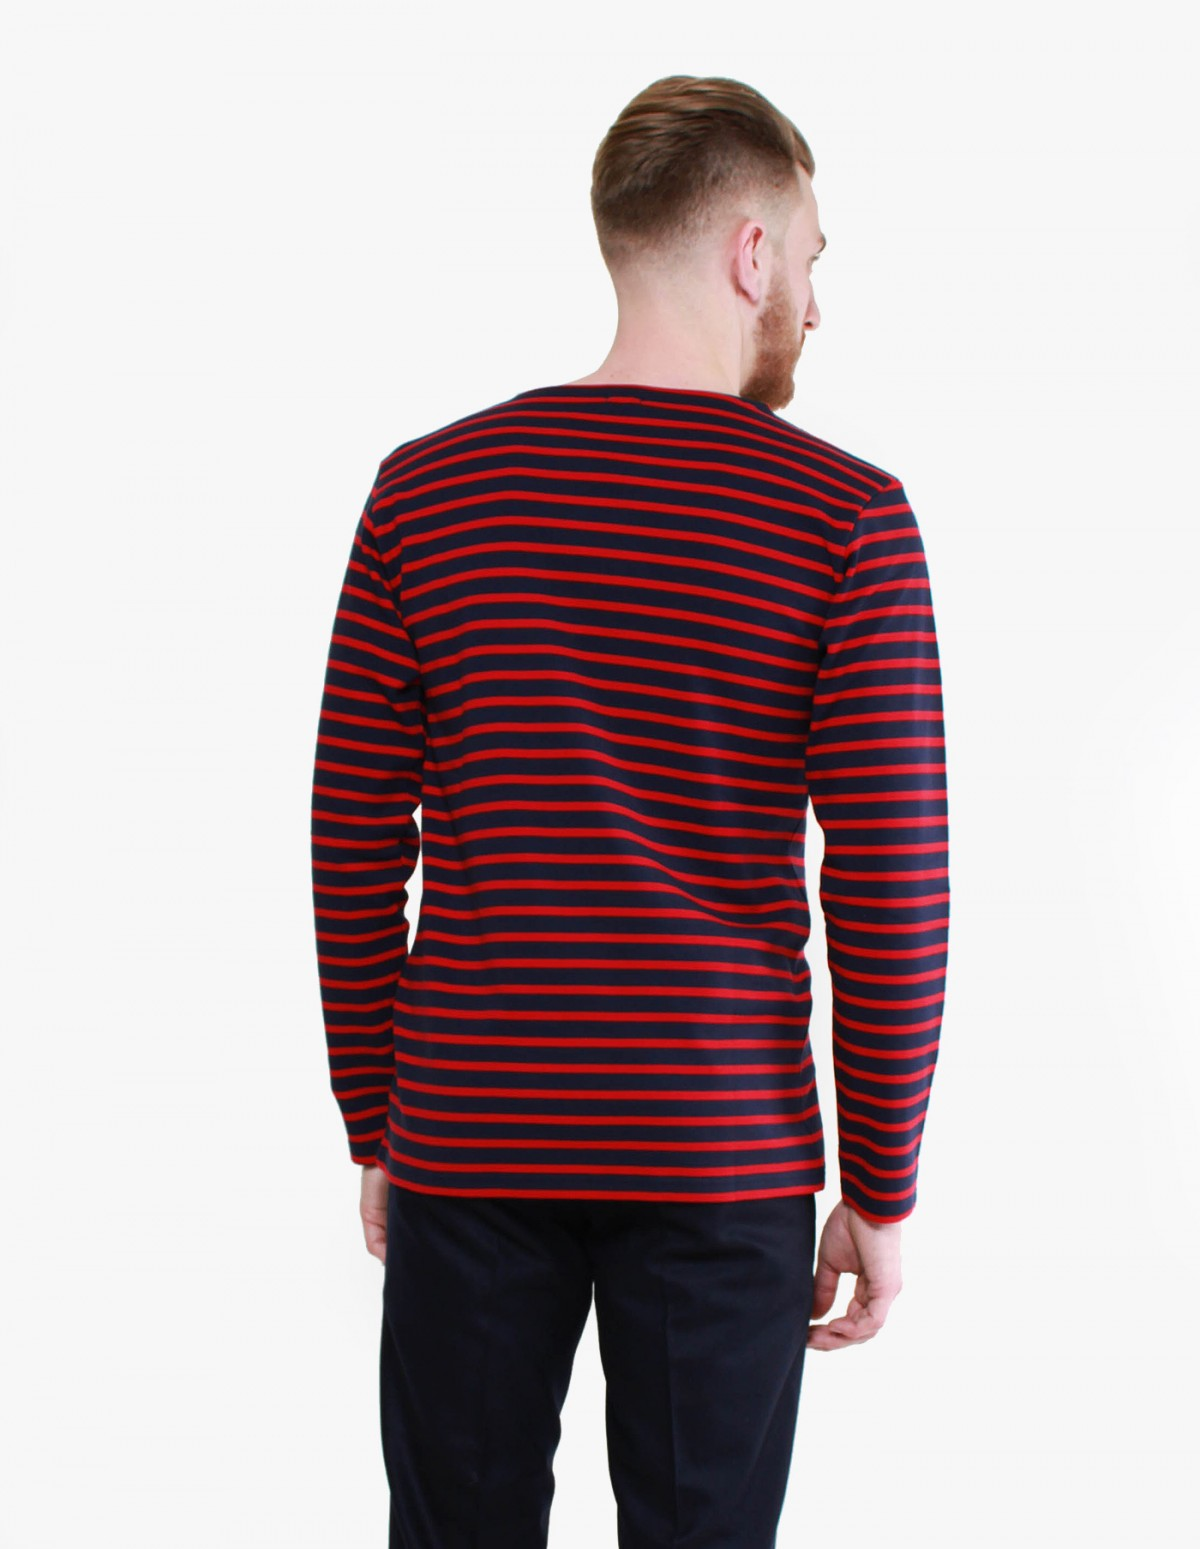 Armor Lux Marinière Long Sleeve in Navy / Braise